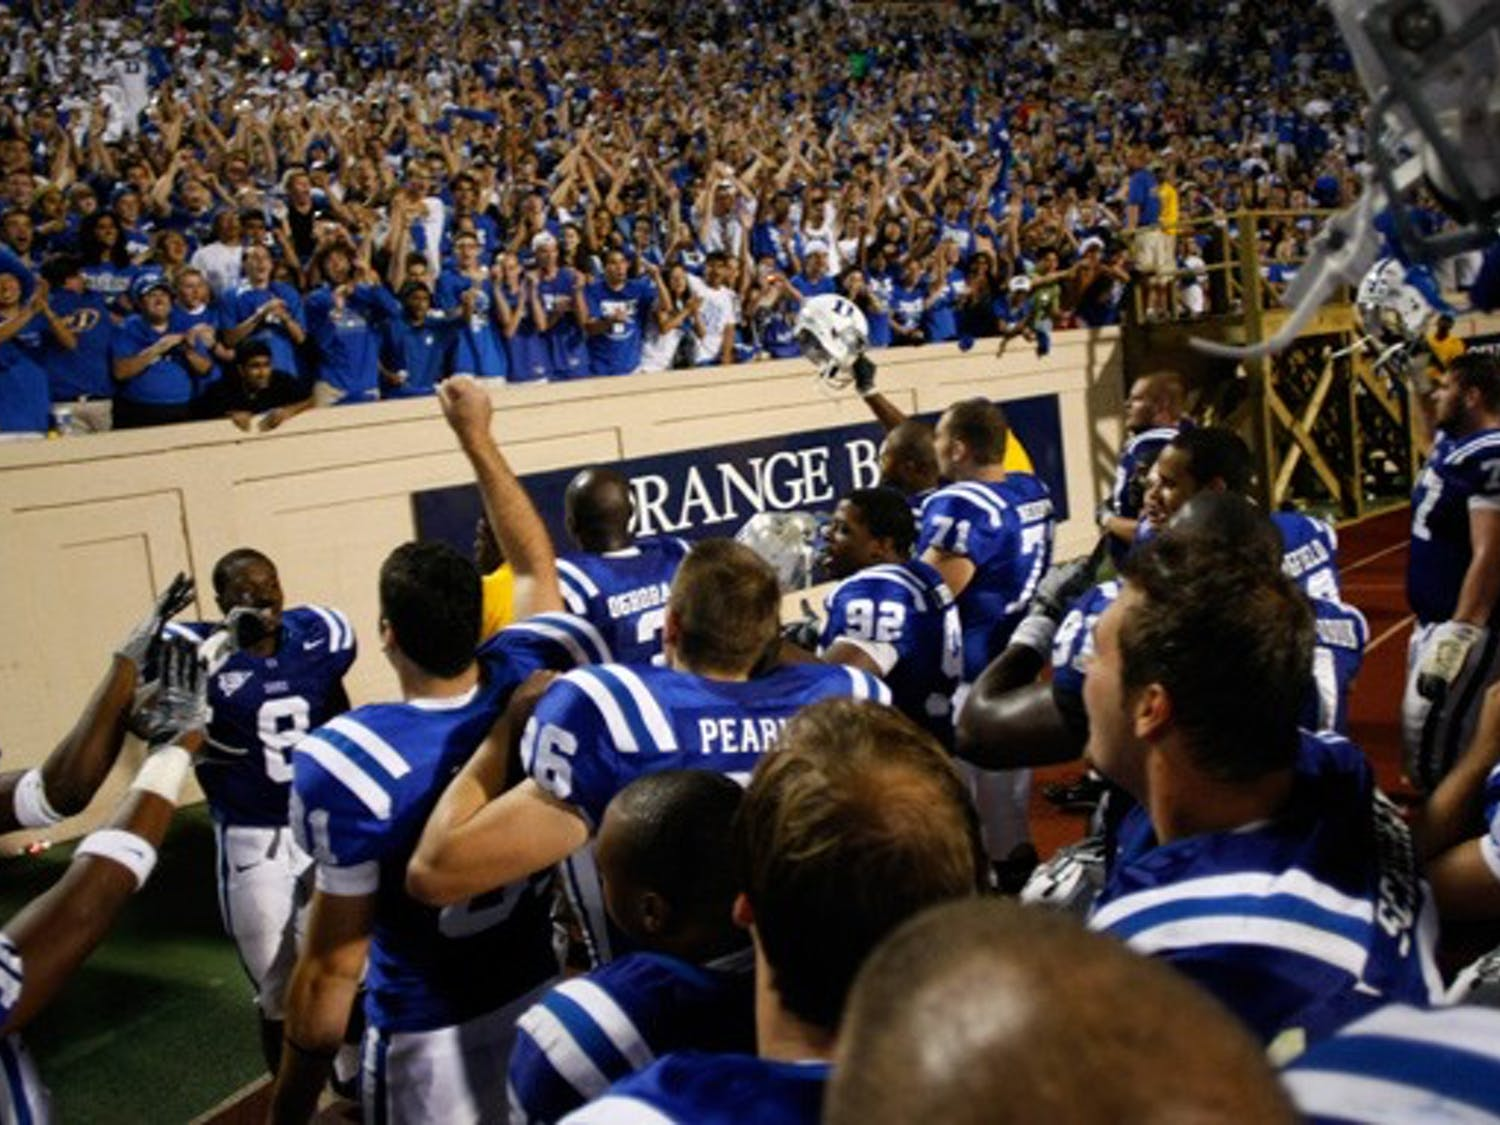 """When the Blue Devils defeated James Madison in David Cutcliffe's first game as head coach, Duke students chanted """"BCS! BCS!"""" at the players."""